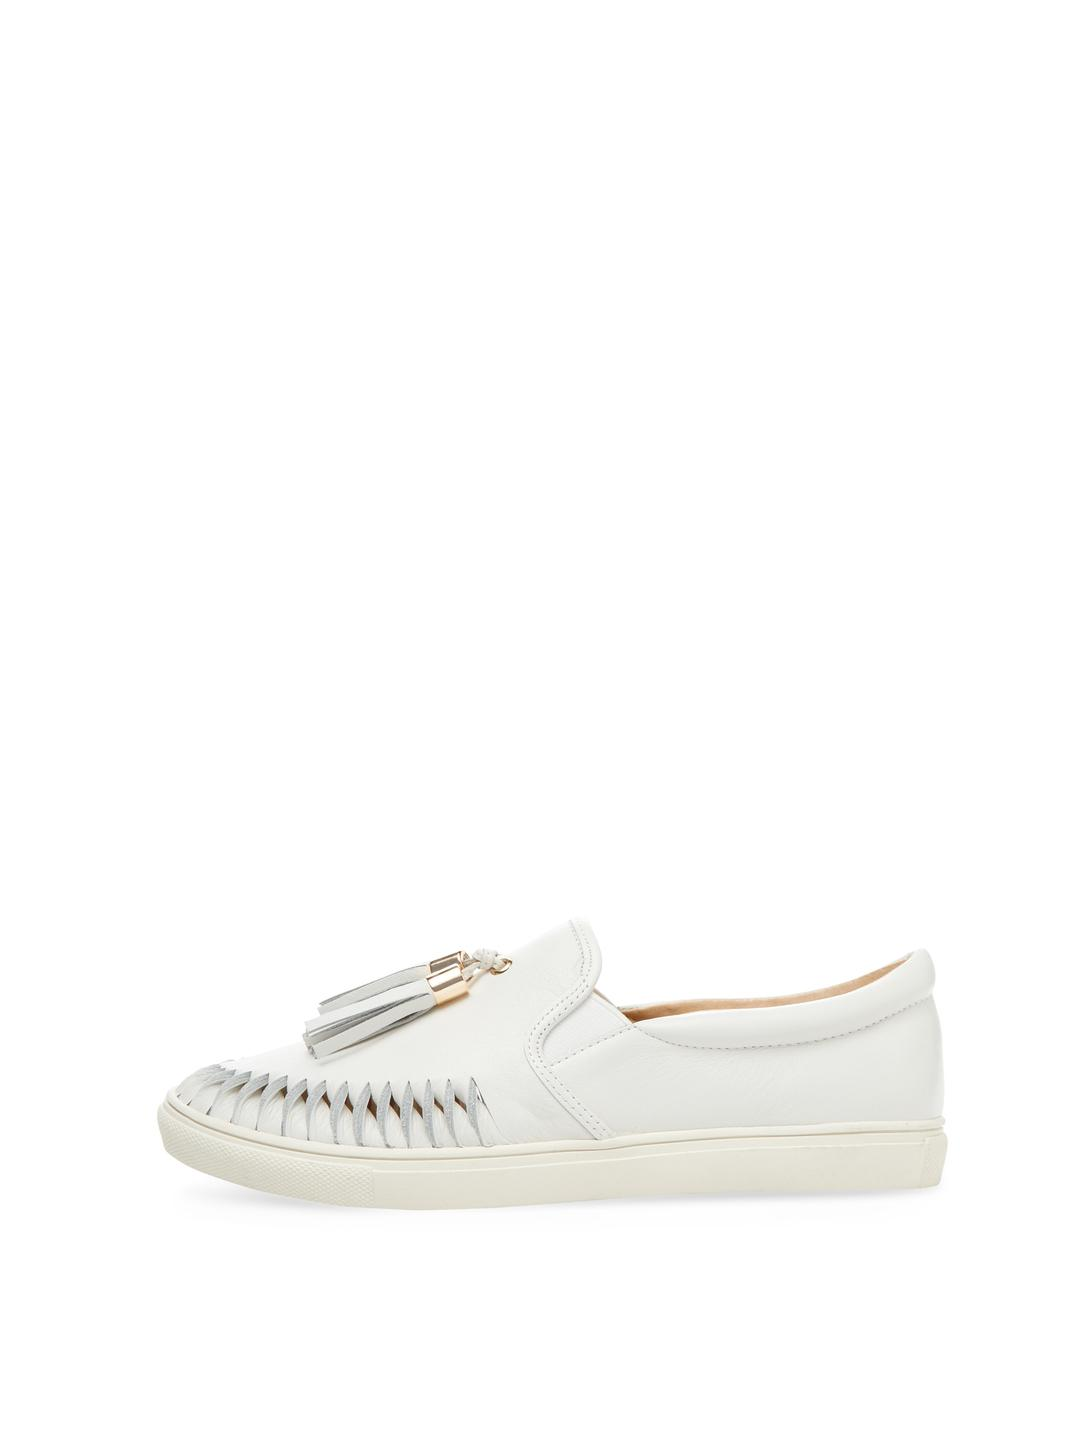 Pure Navy Cheyenne Leather Slip-on Sneaker in White